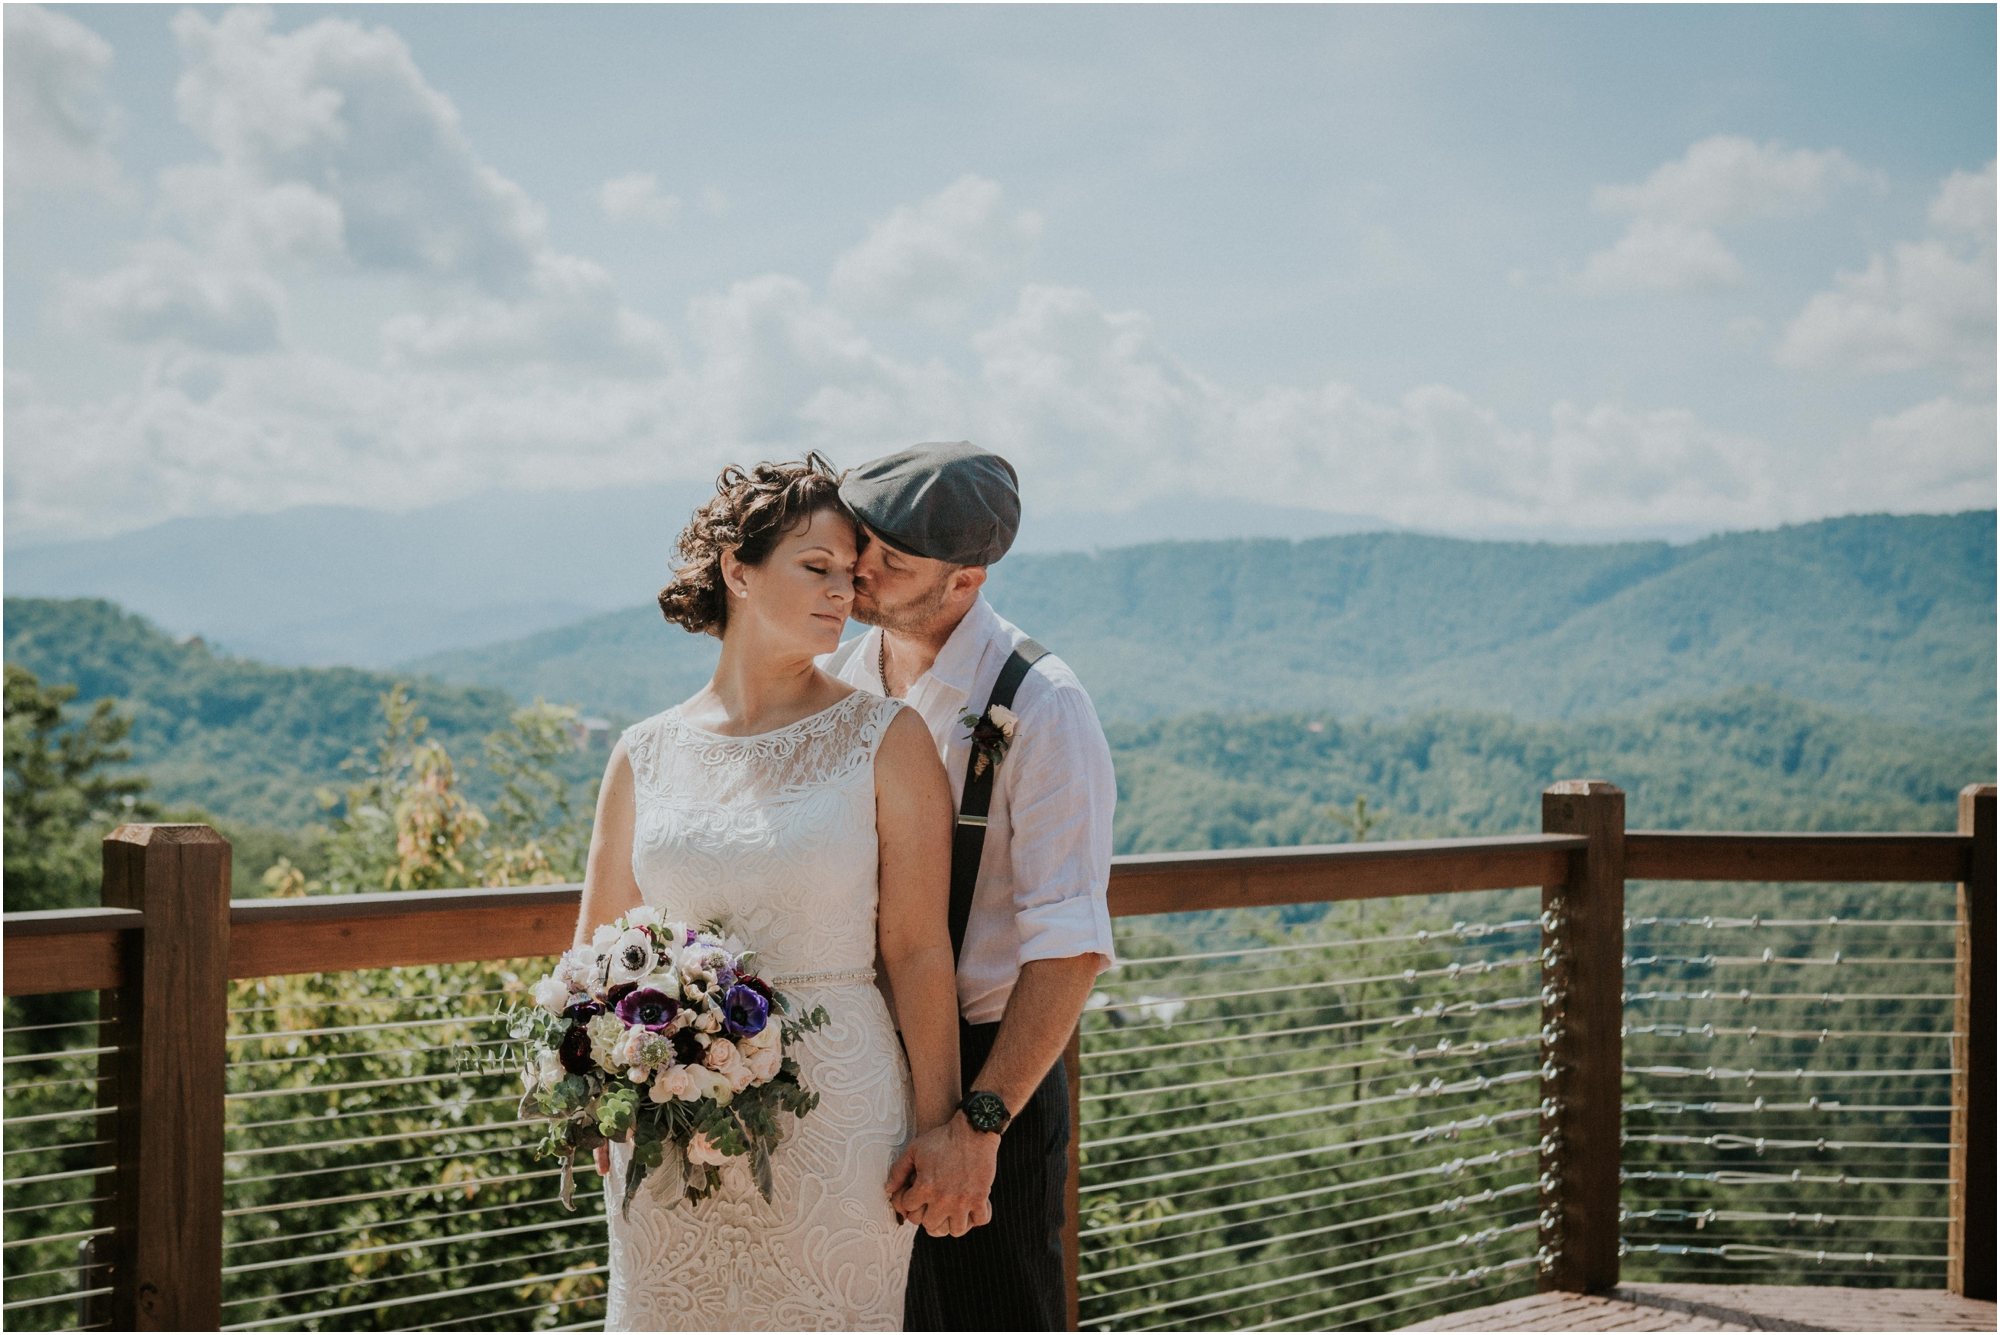 cabin-parkside-resort-the-magnolia-venue-tennessee-mountain-views-intimate-wedding_0110.jpg